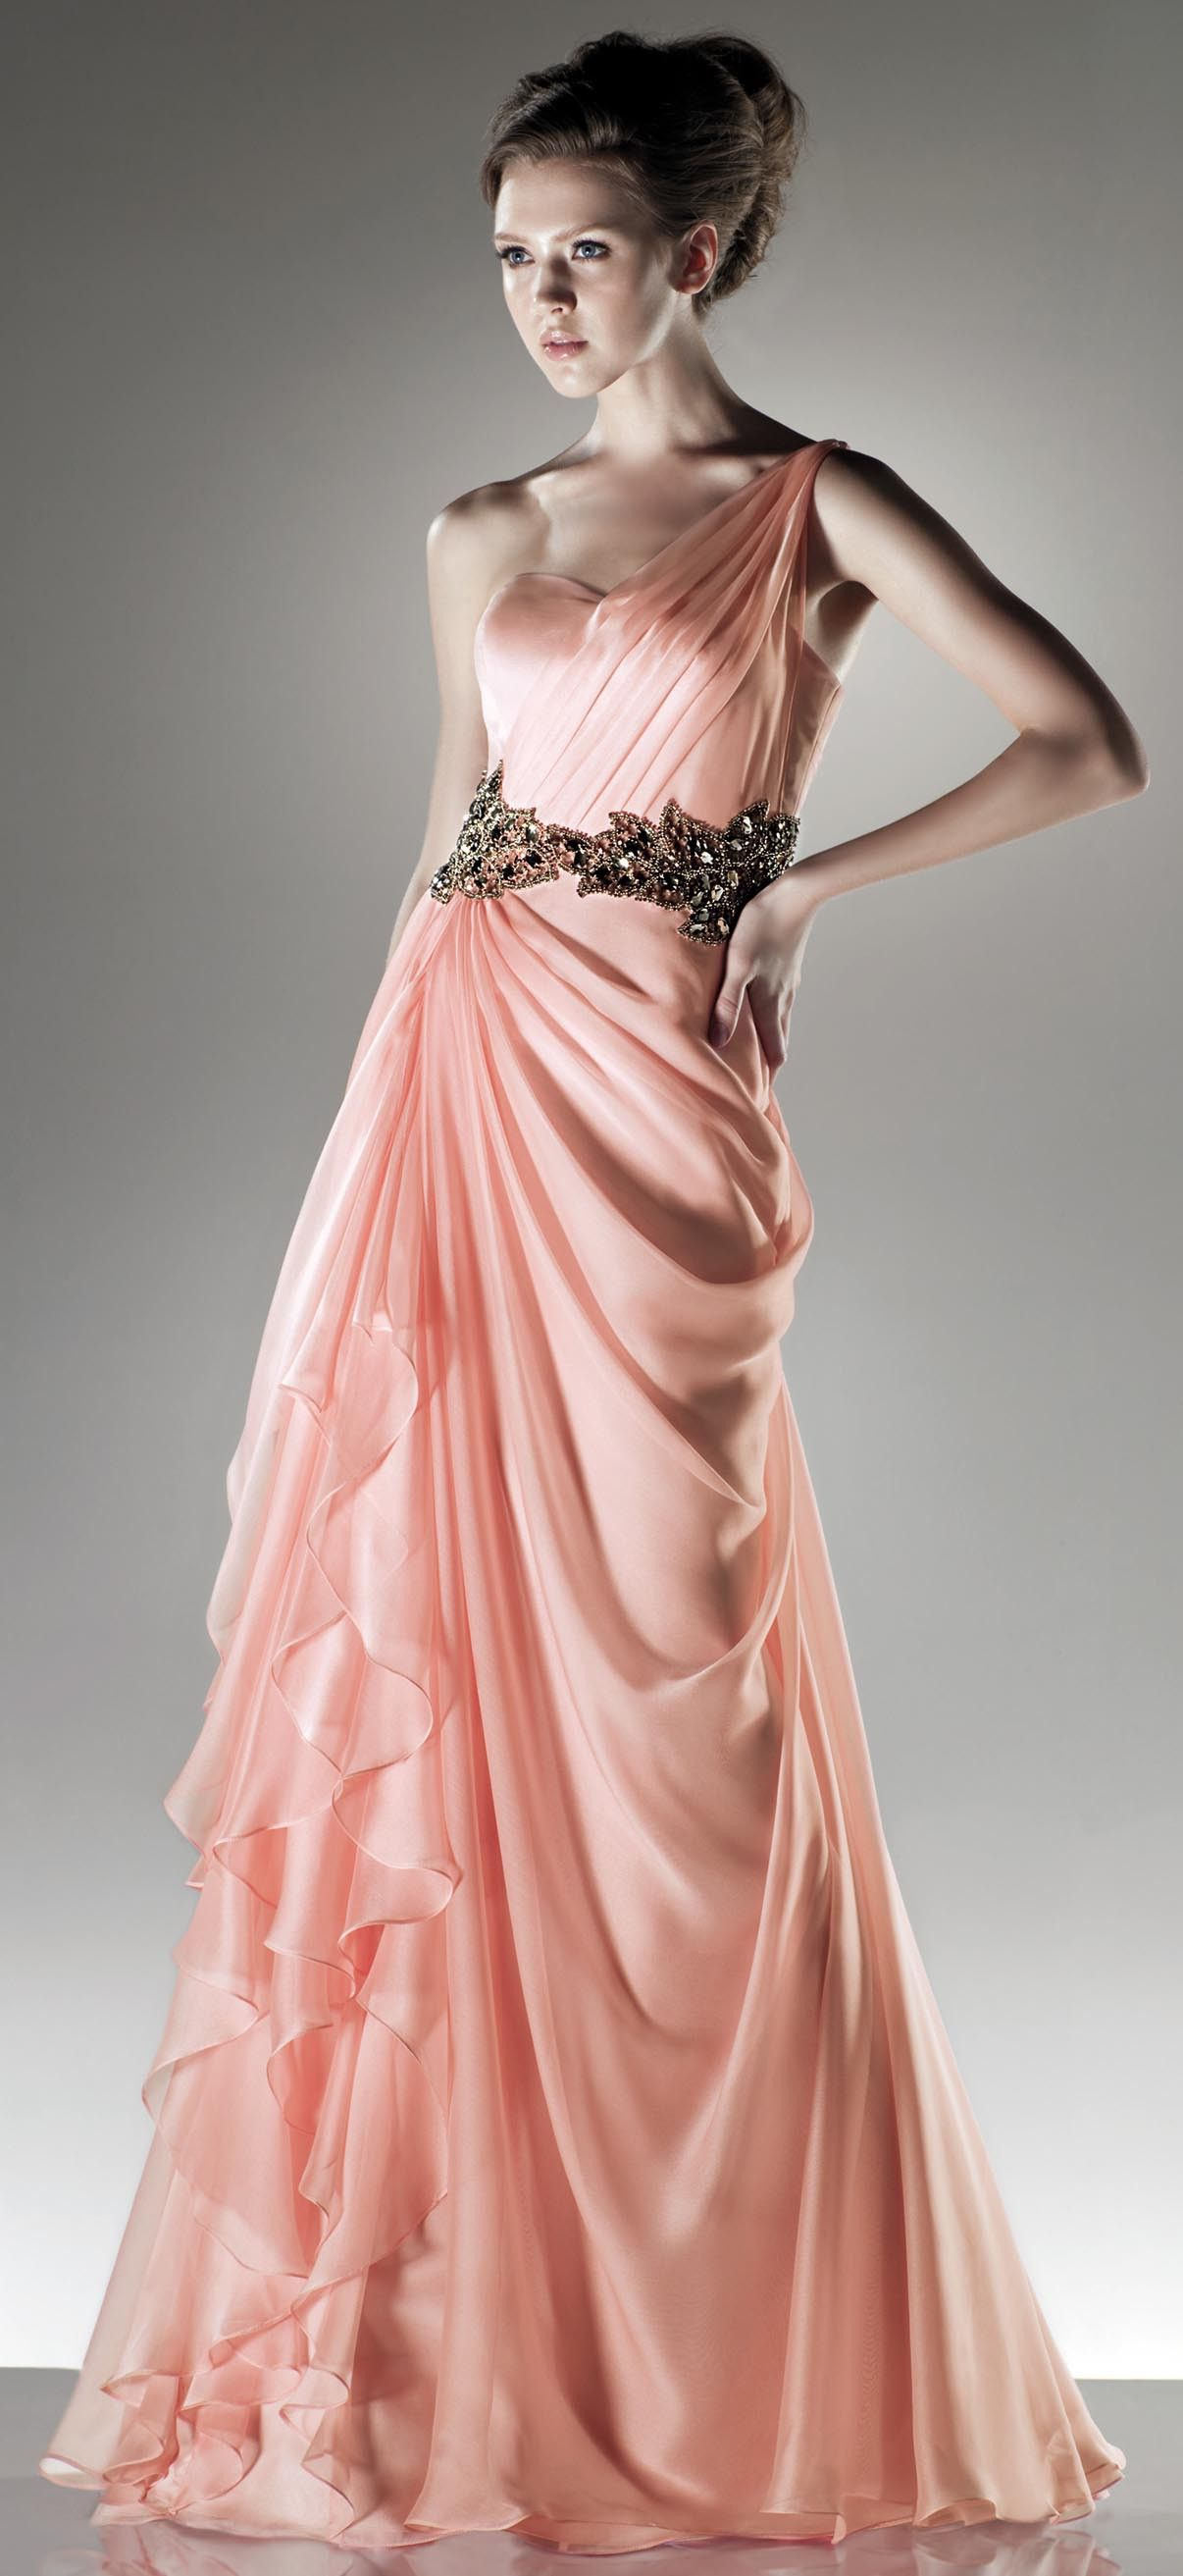 Elegant one shoulder chiffon gown $269.00 | to the nines | Pinterest ...